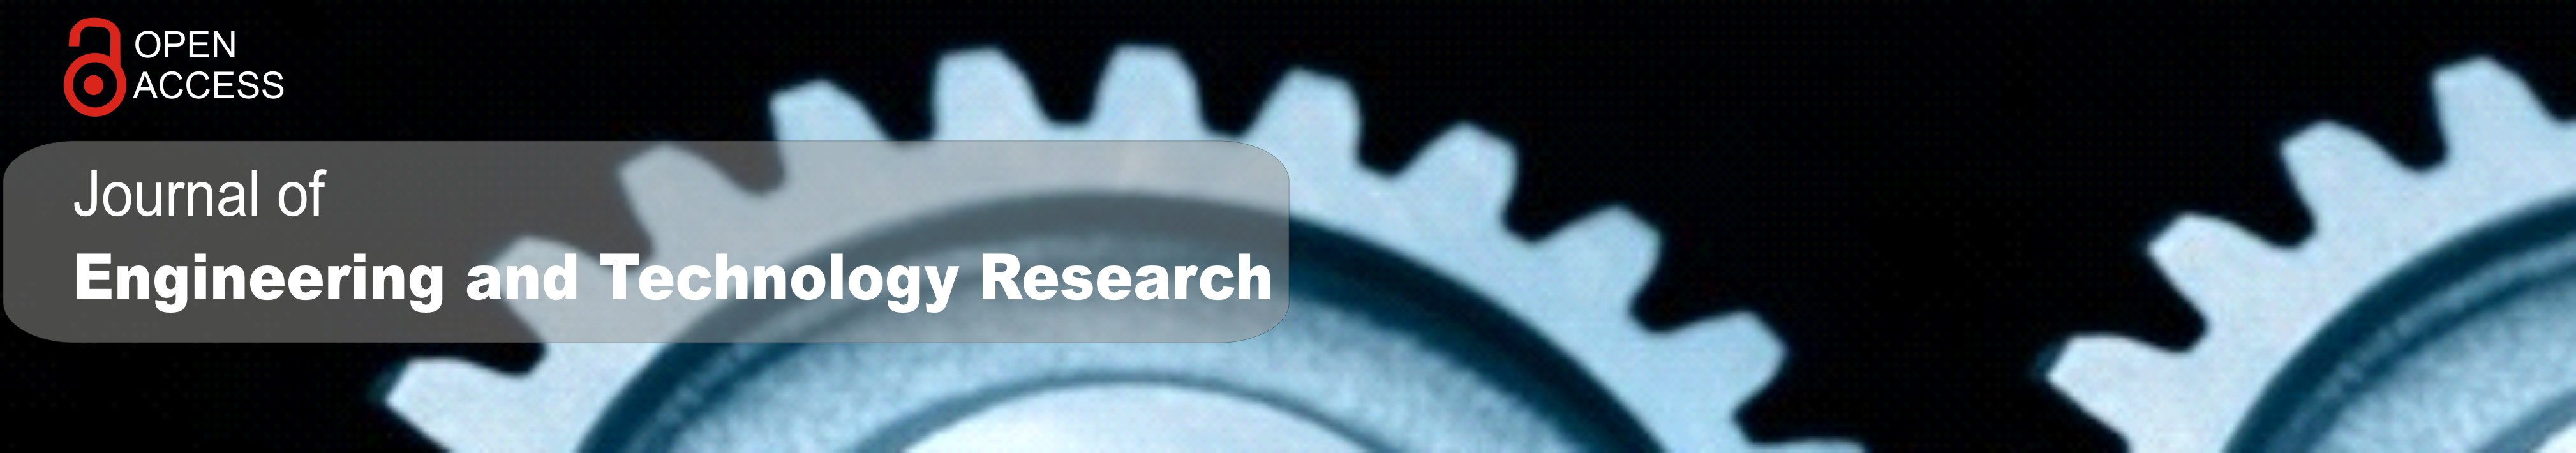 Journal of Engineering and Technology Research